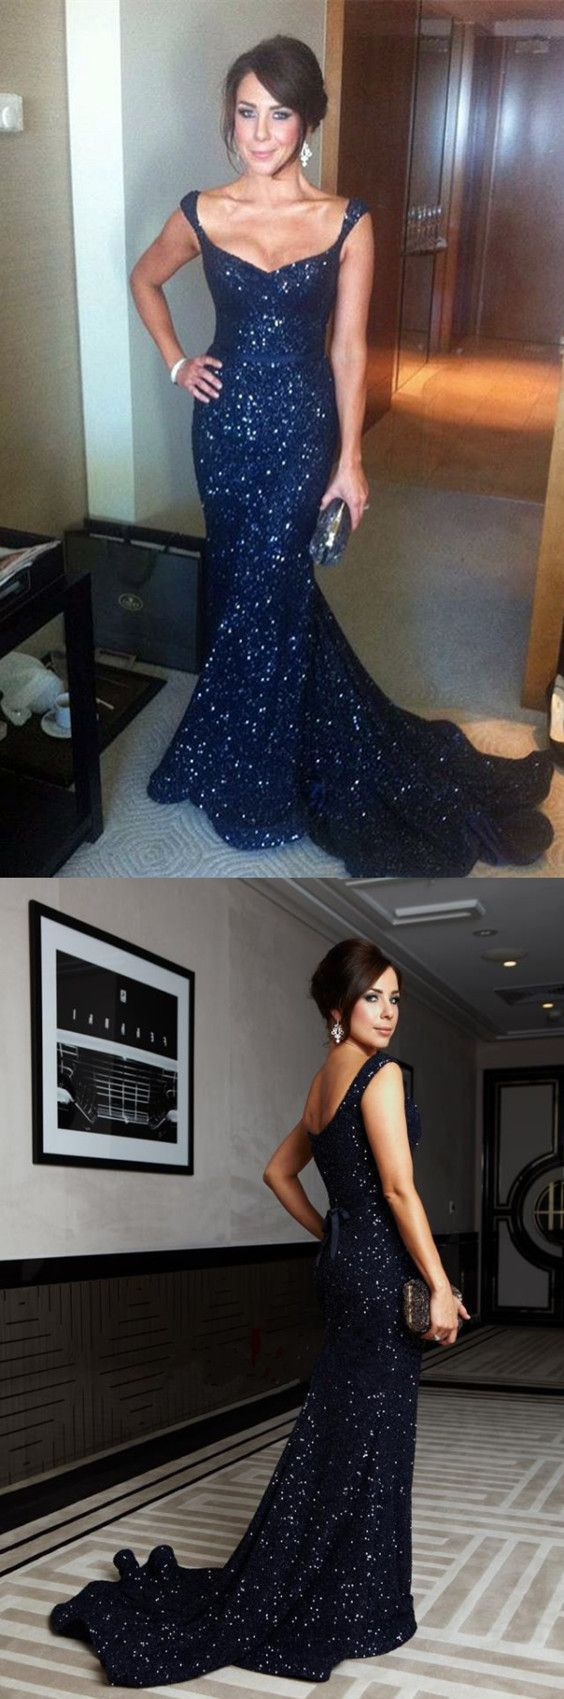 Navy blue sequin vneck mermaid evening gowns court train prom dress